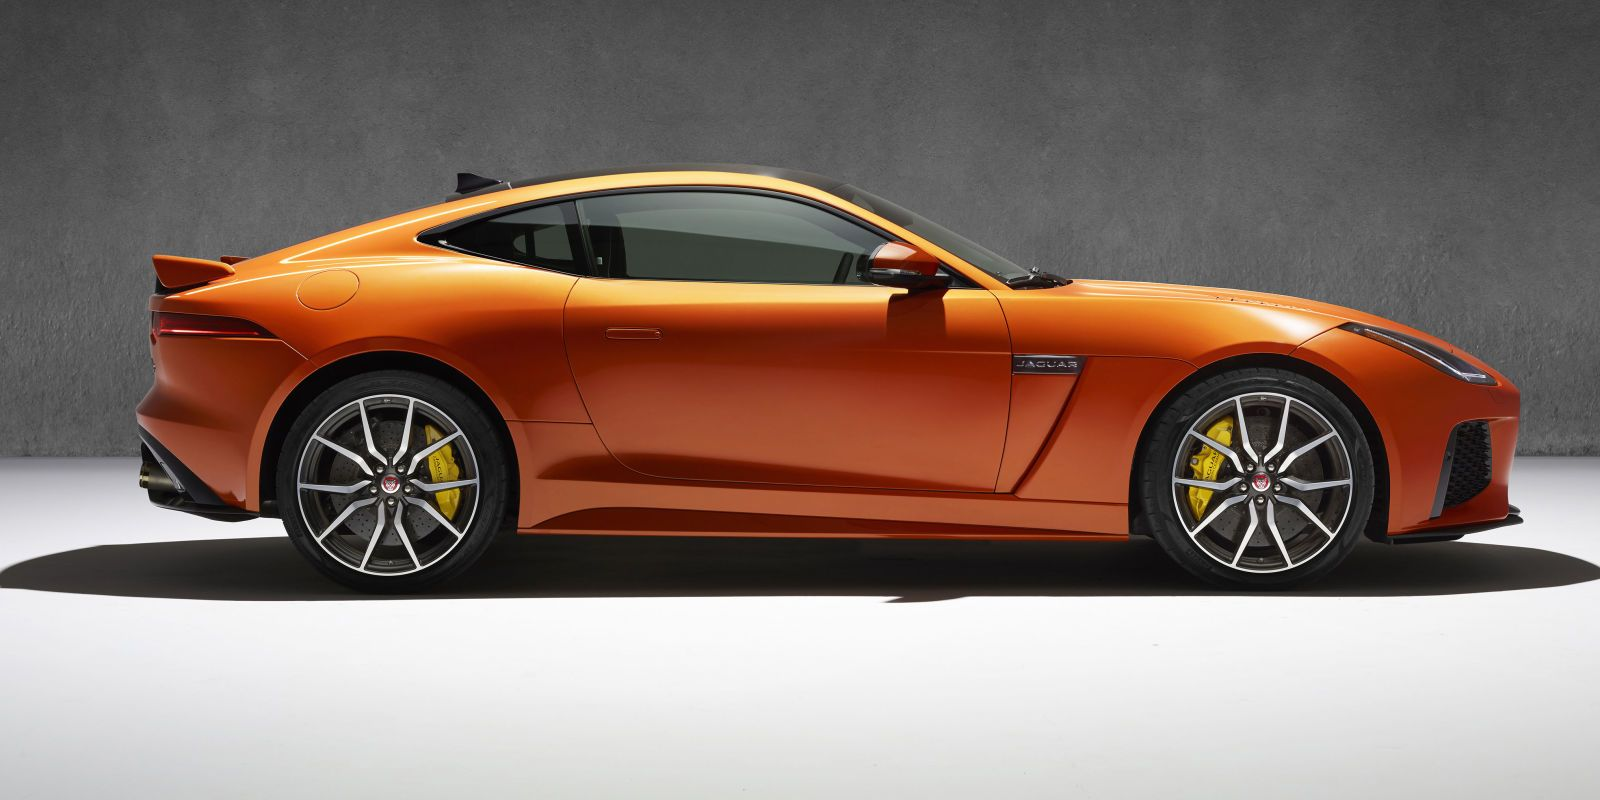 jaguar f type svr this is officially the fastest production jaguar rh pinterest com  fastest production car on a track